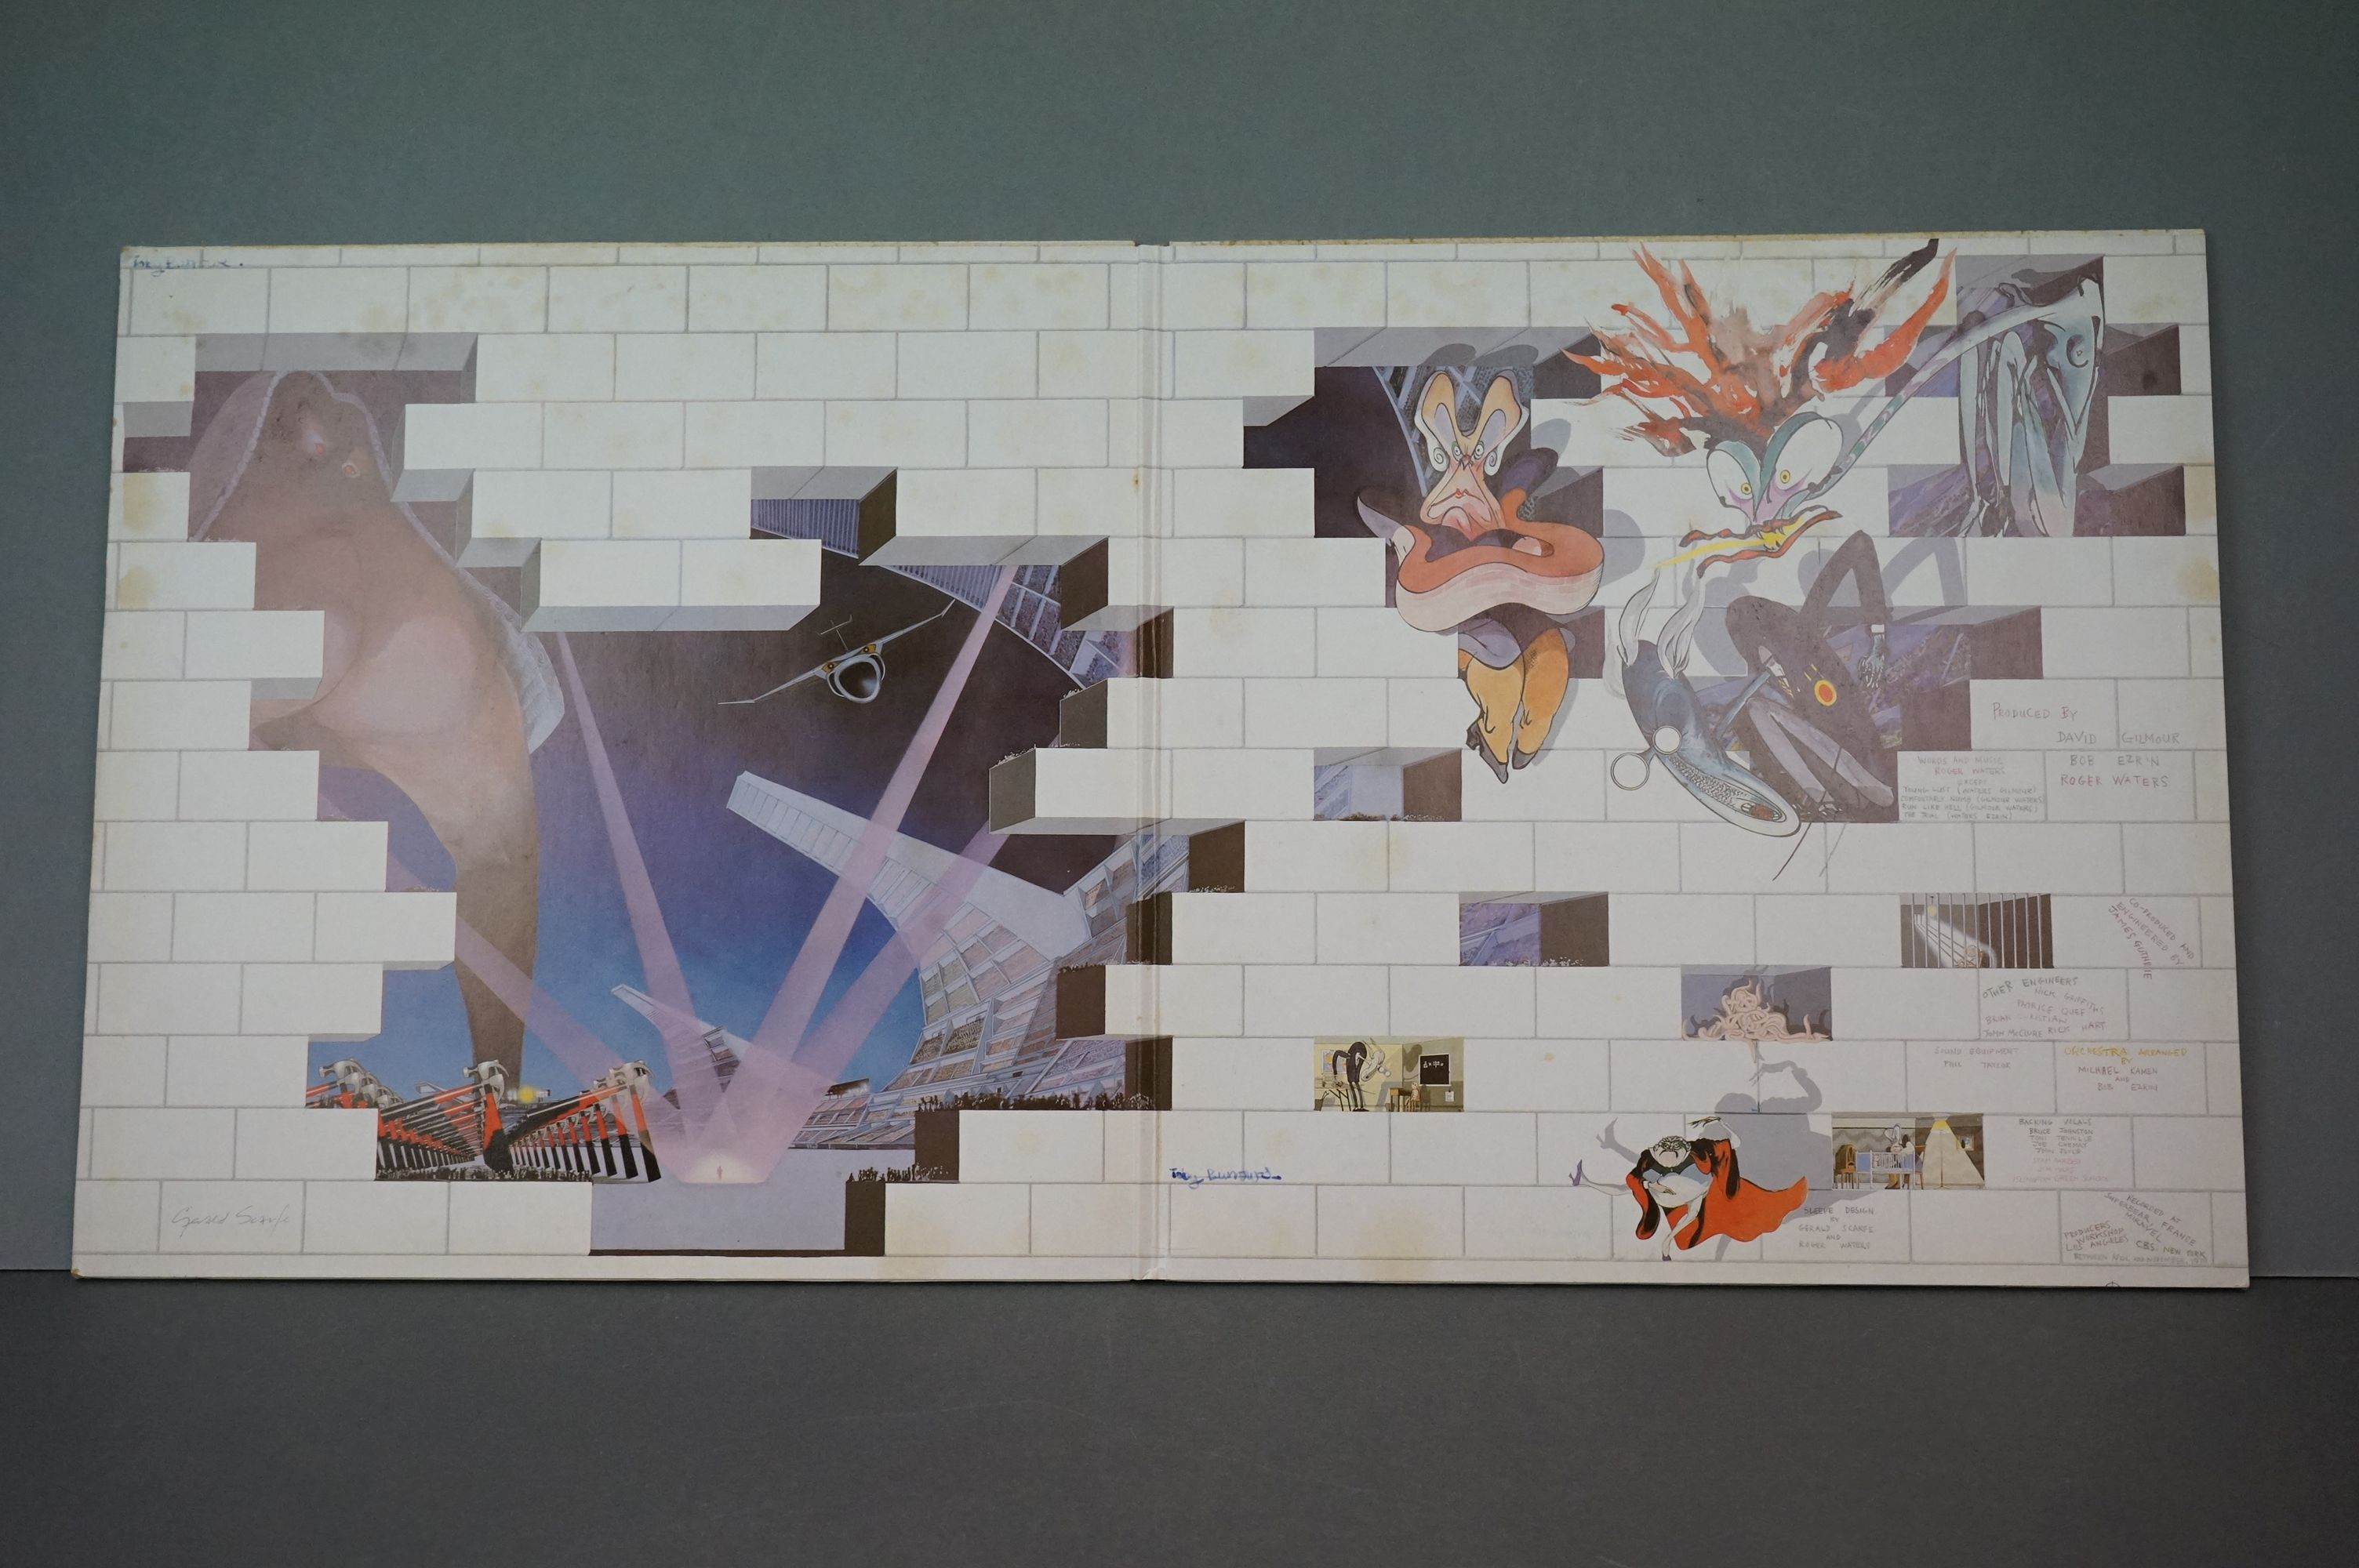 Vinyl - Pink Floyd The Wall 1A1S863410 Dutch pressing, mismatched inners, side 1 & 2 UK rounded - Image 2 of 3